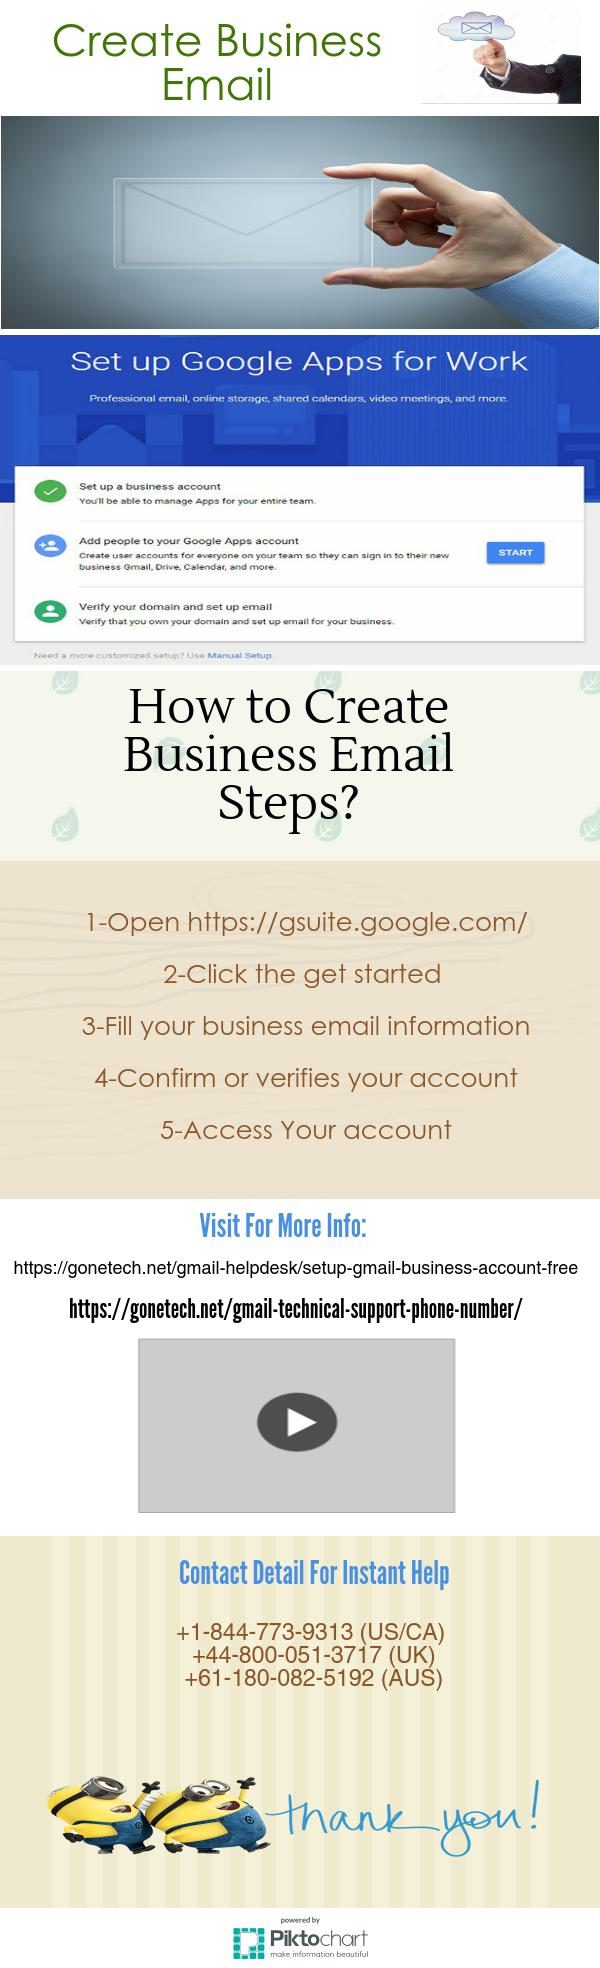 Pin by Linda Allen on Your Pinterest likes (With images